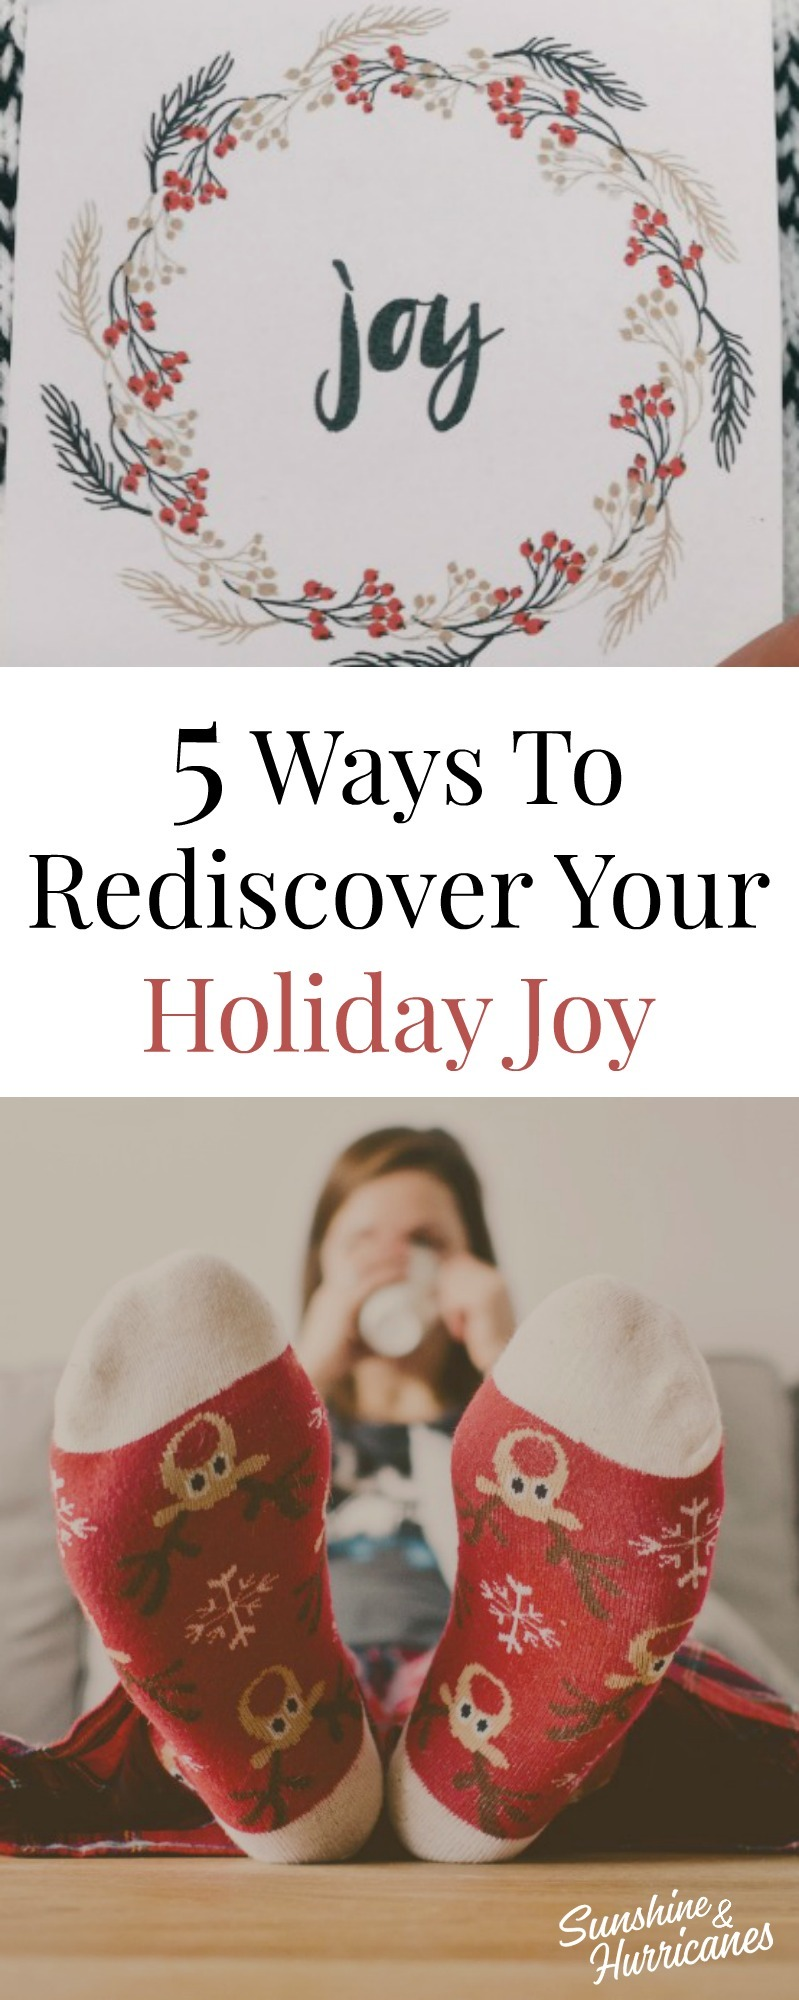 5 Ways To Rediscover Your Holiday Joy By Getting Off The Too Much Train